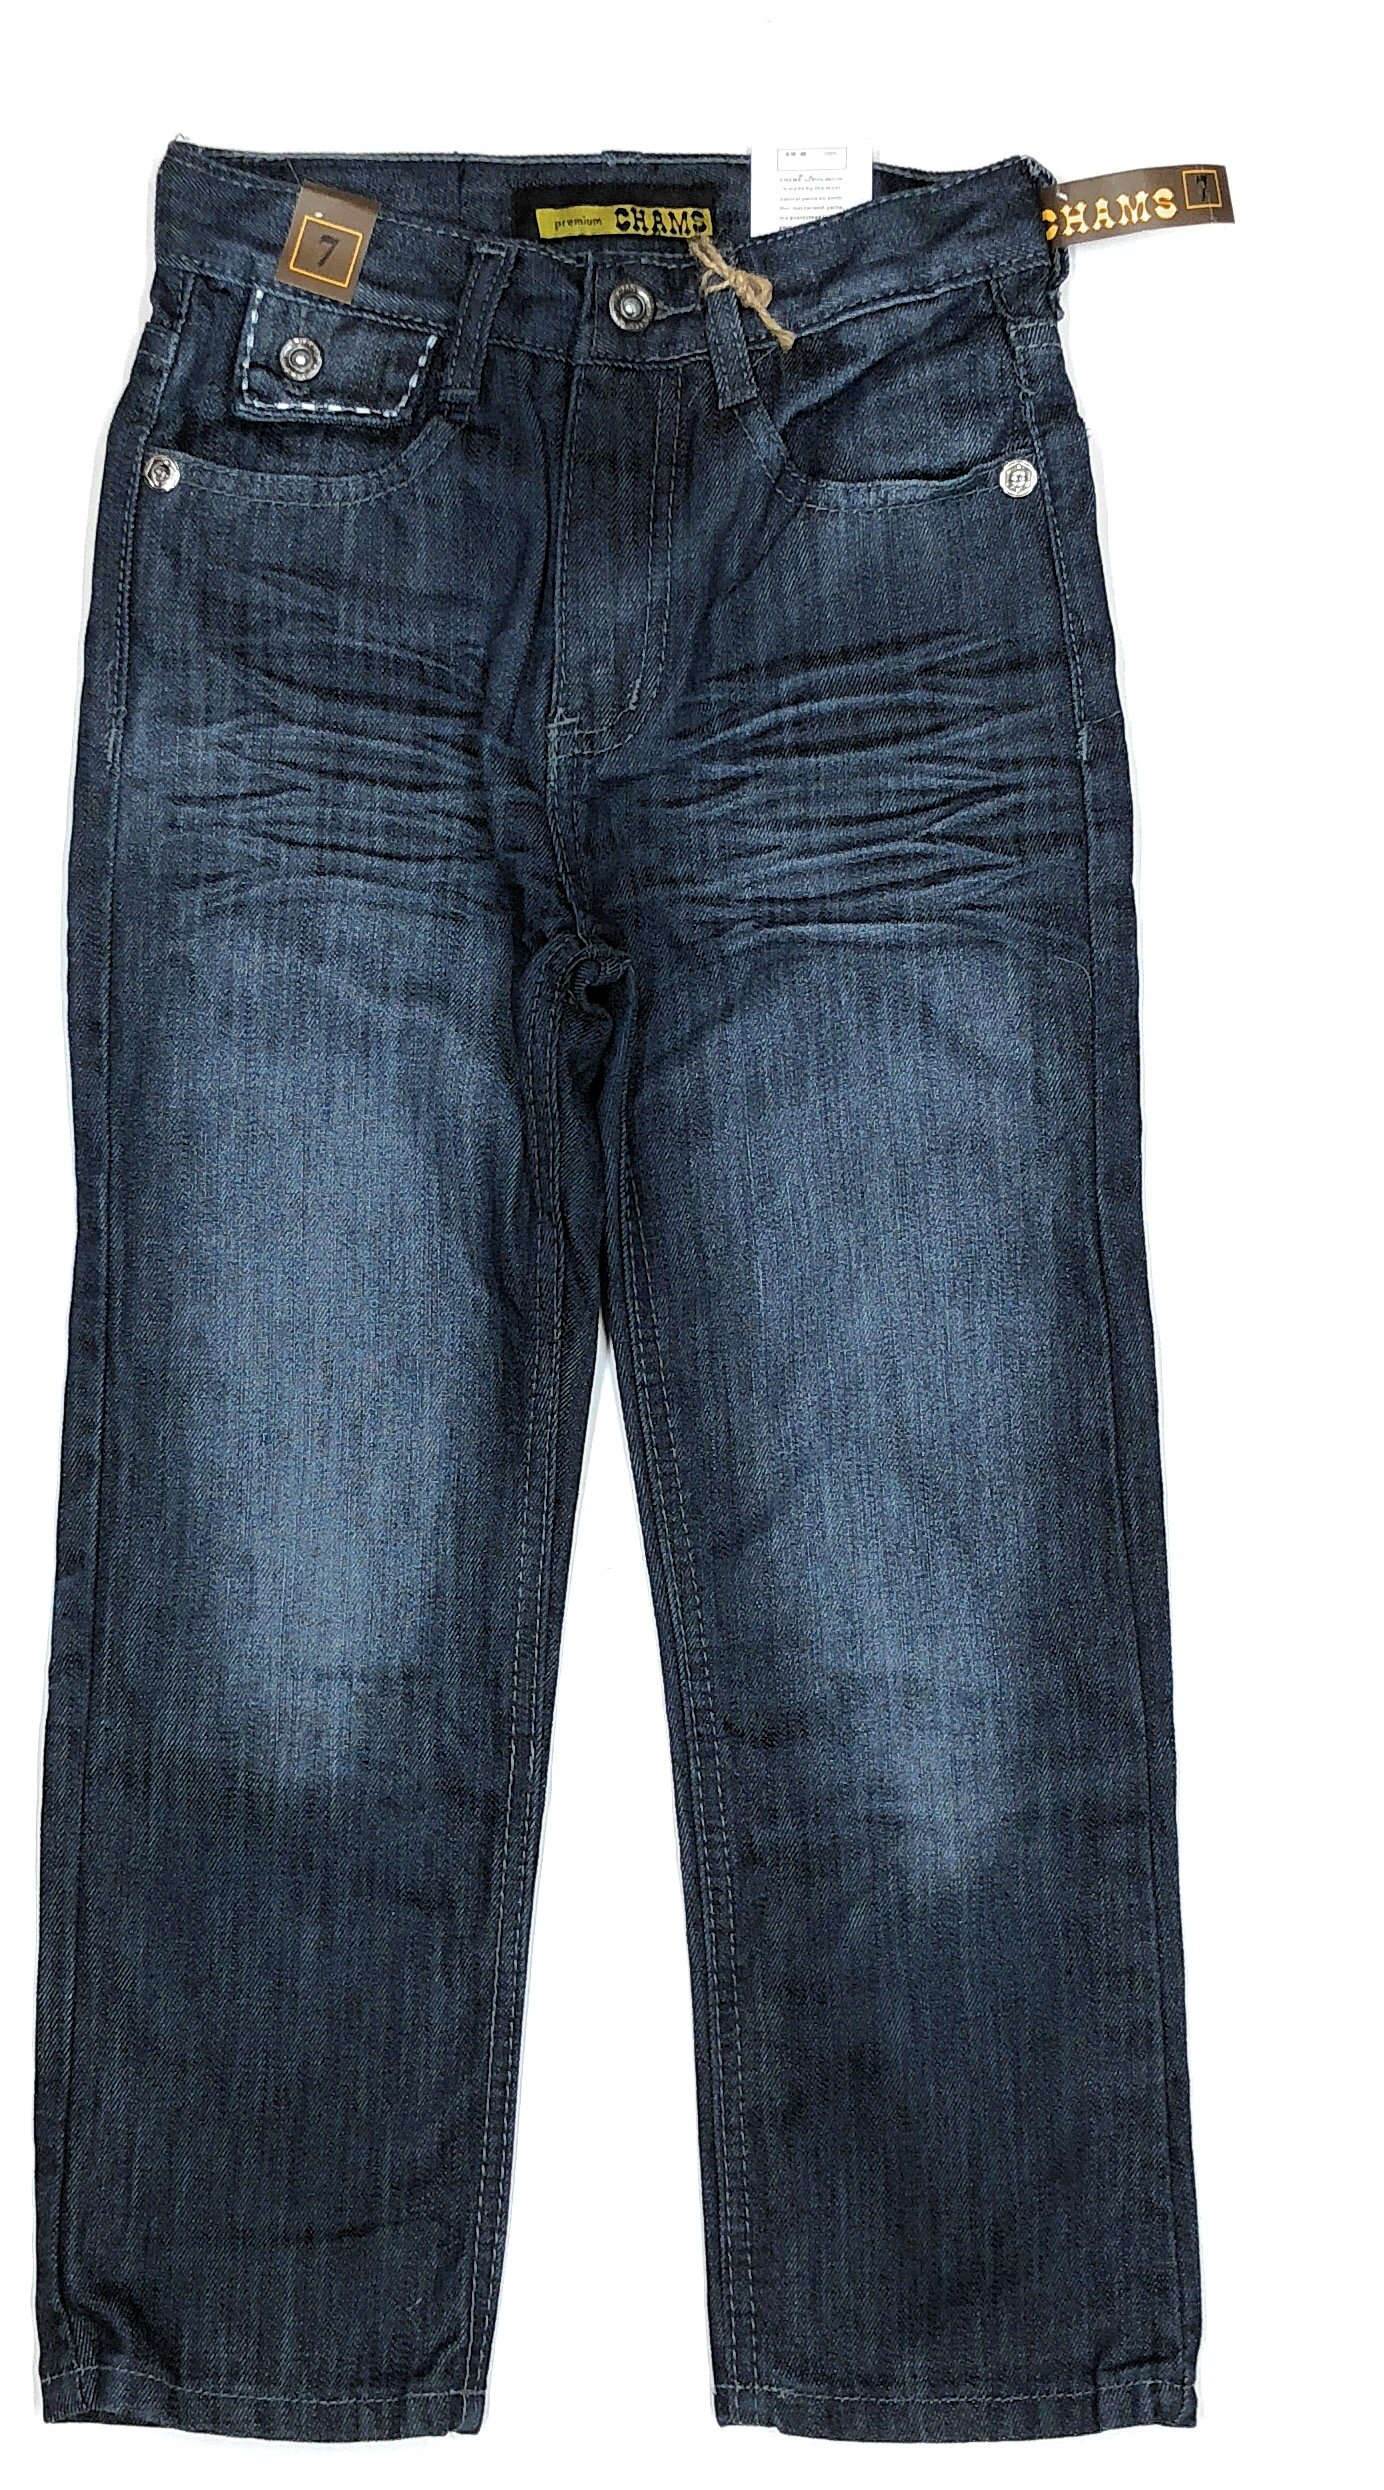 5bbc05fe733e Get Quotations · Chams Boy's Straight Fit Dark Wash Mercerized Baked Denim  Jeans Size: